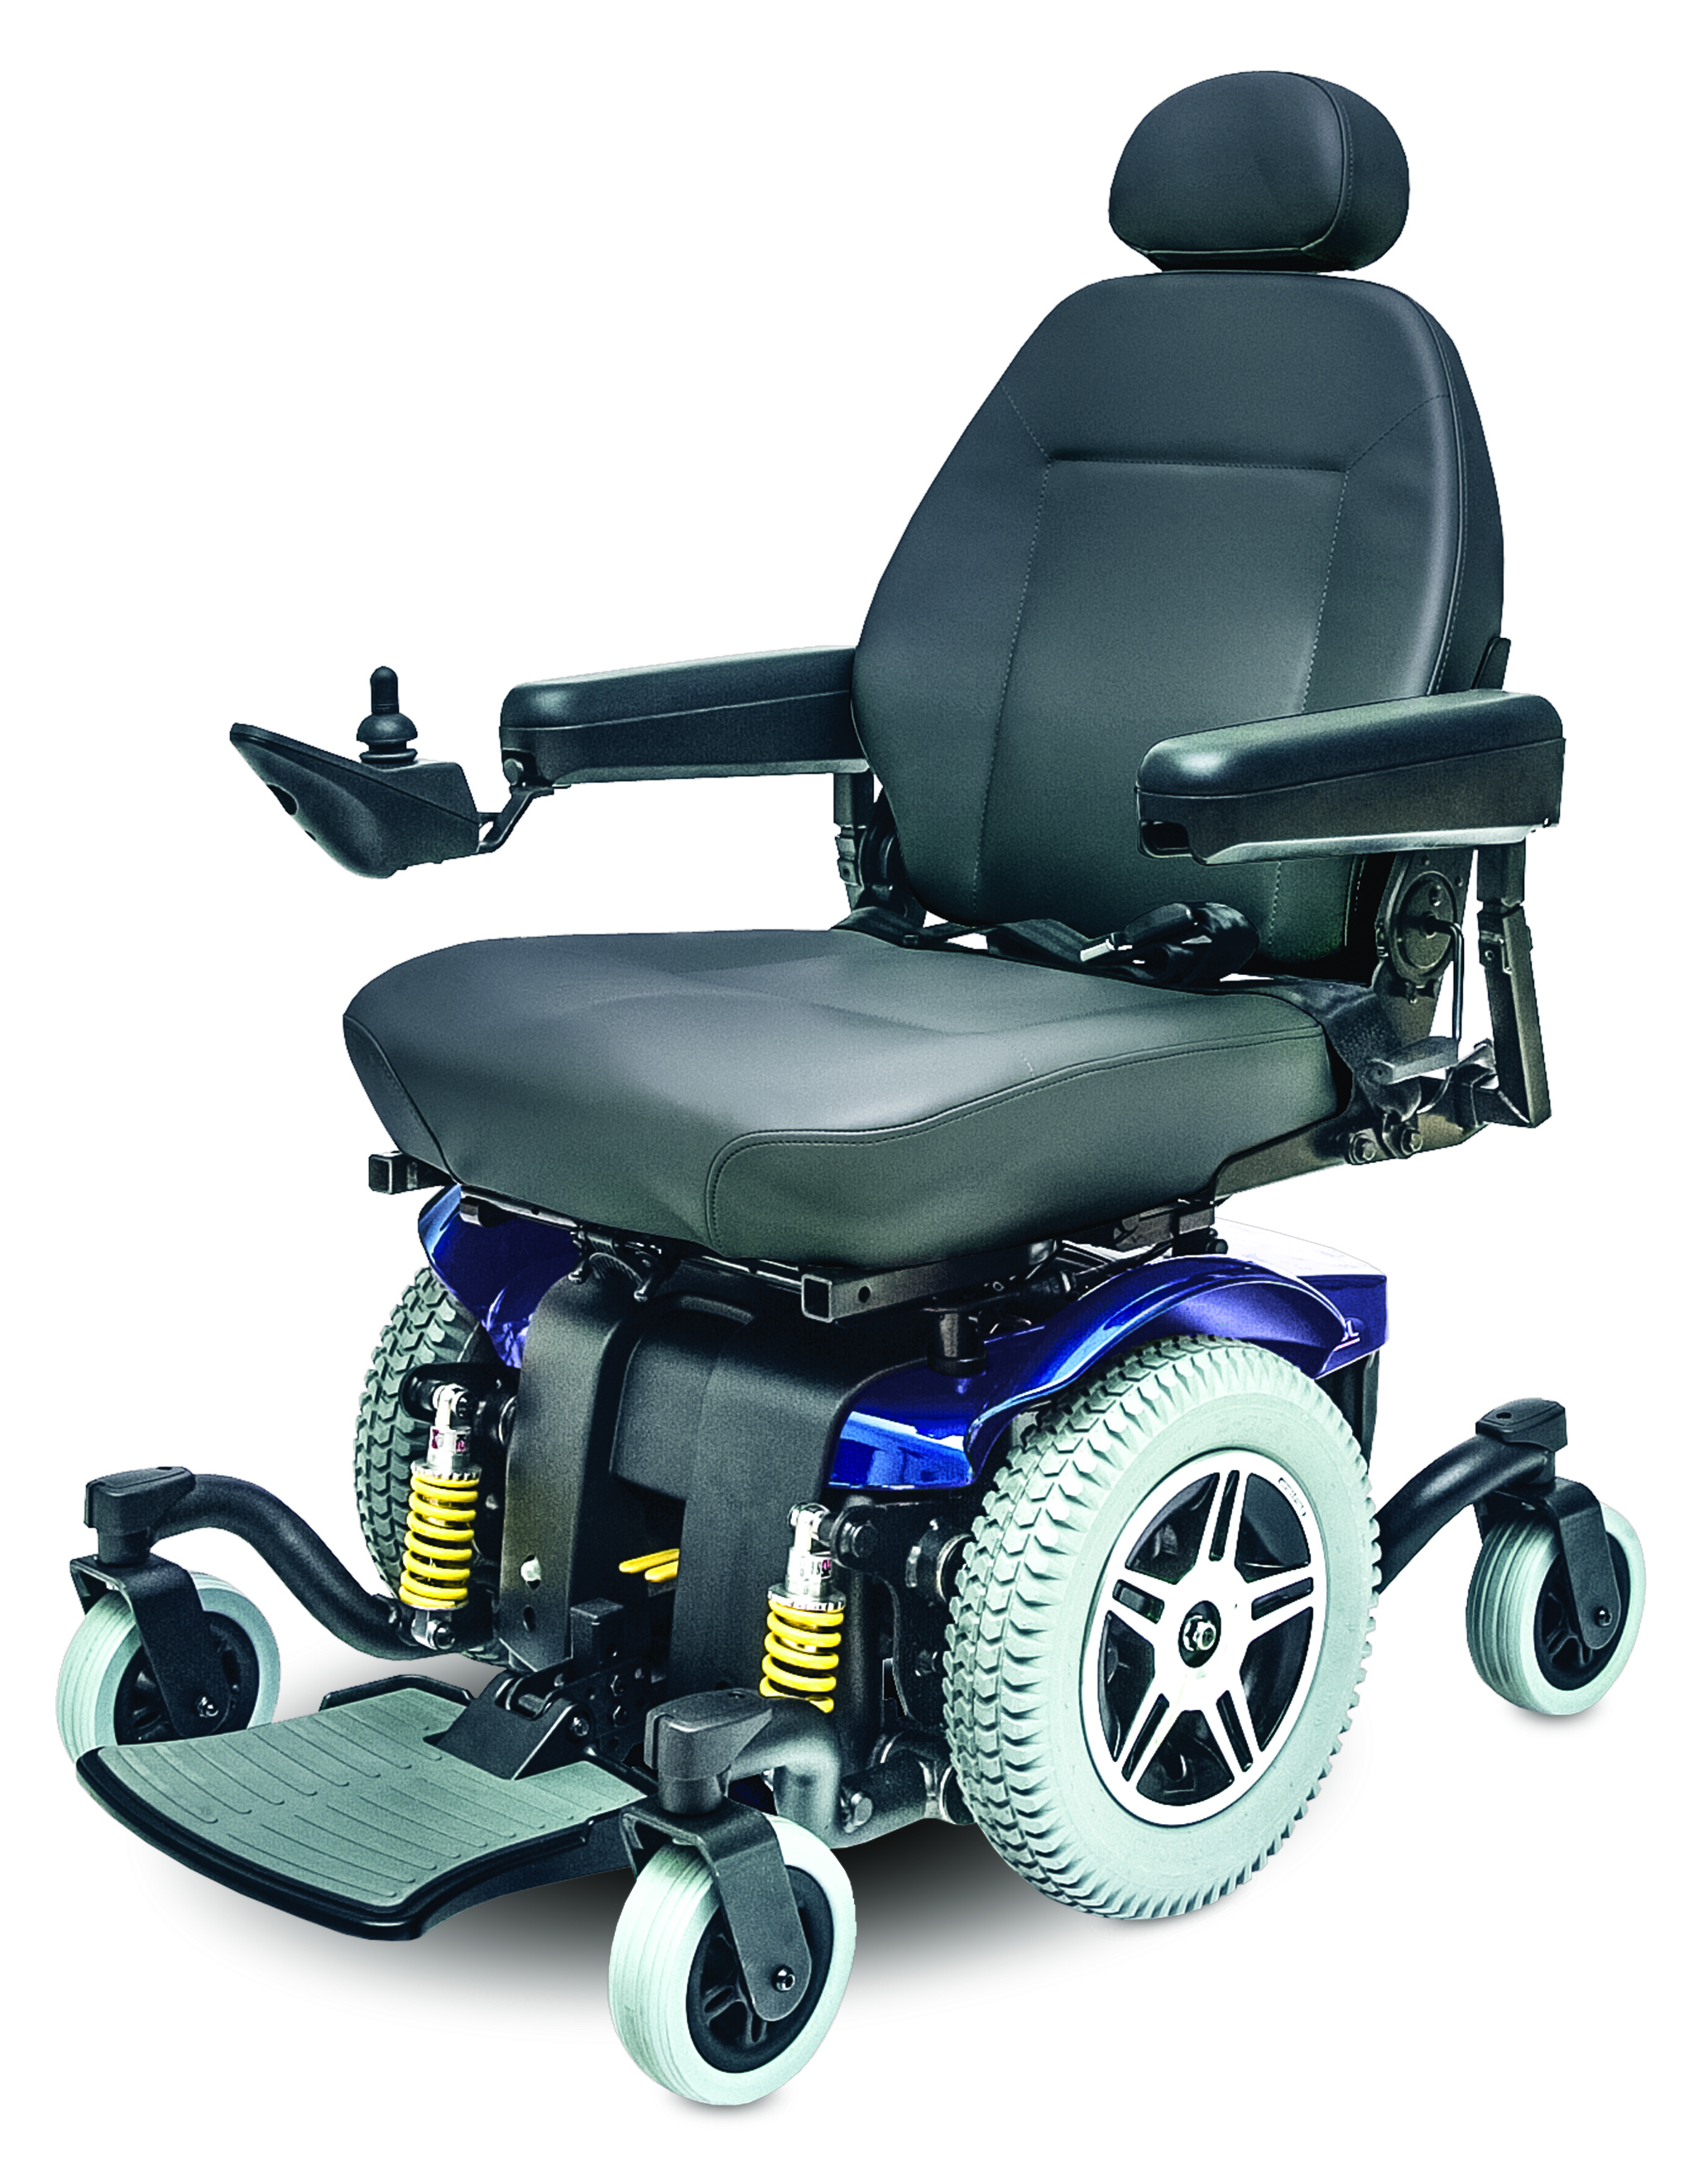 Pride Jazzy 614 HD Power Chair at lowest prices